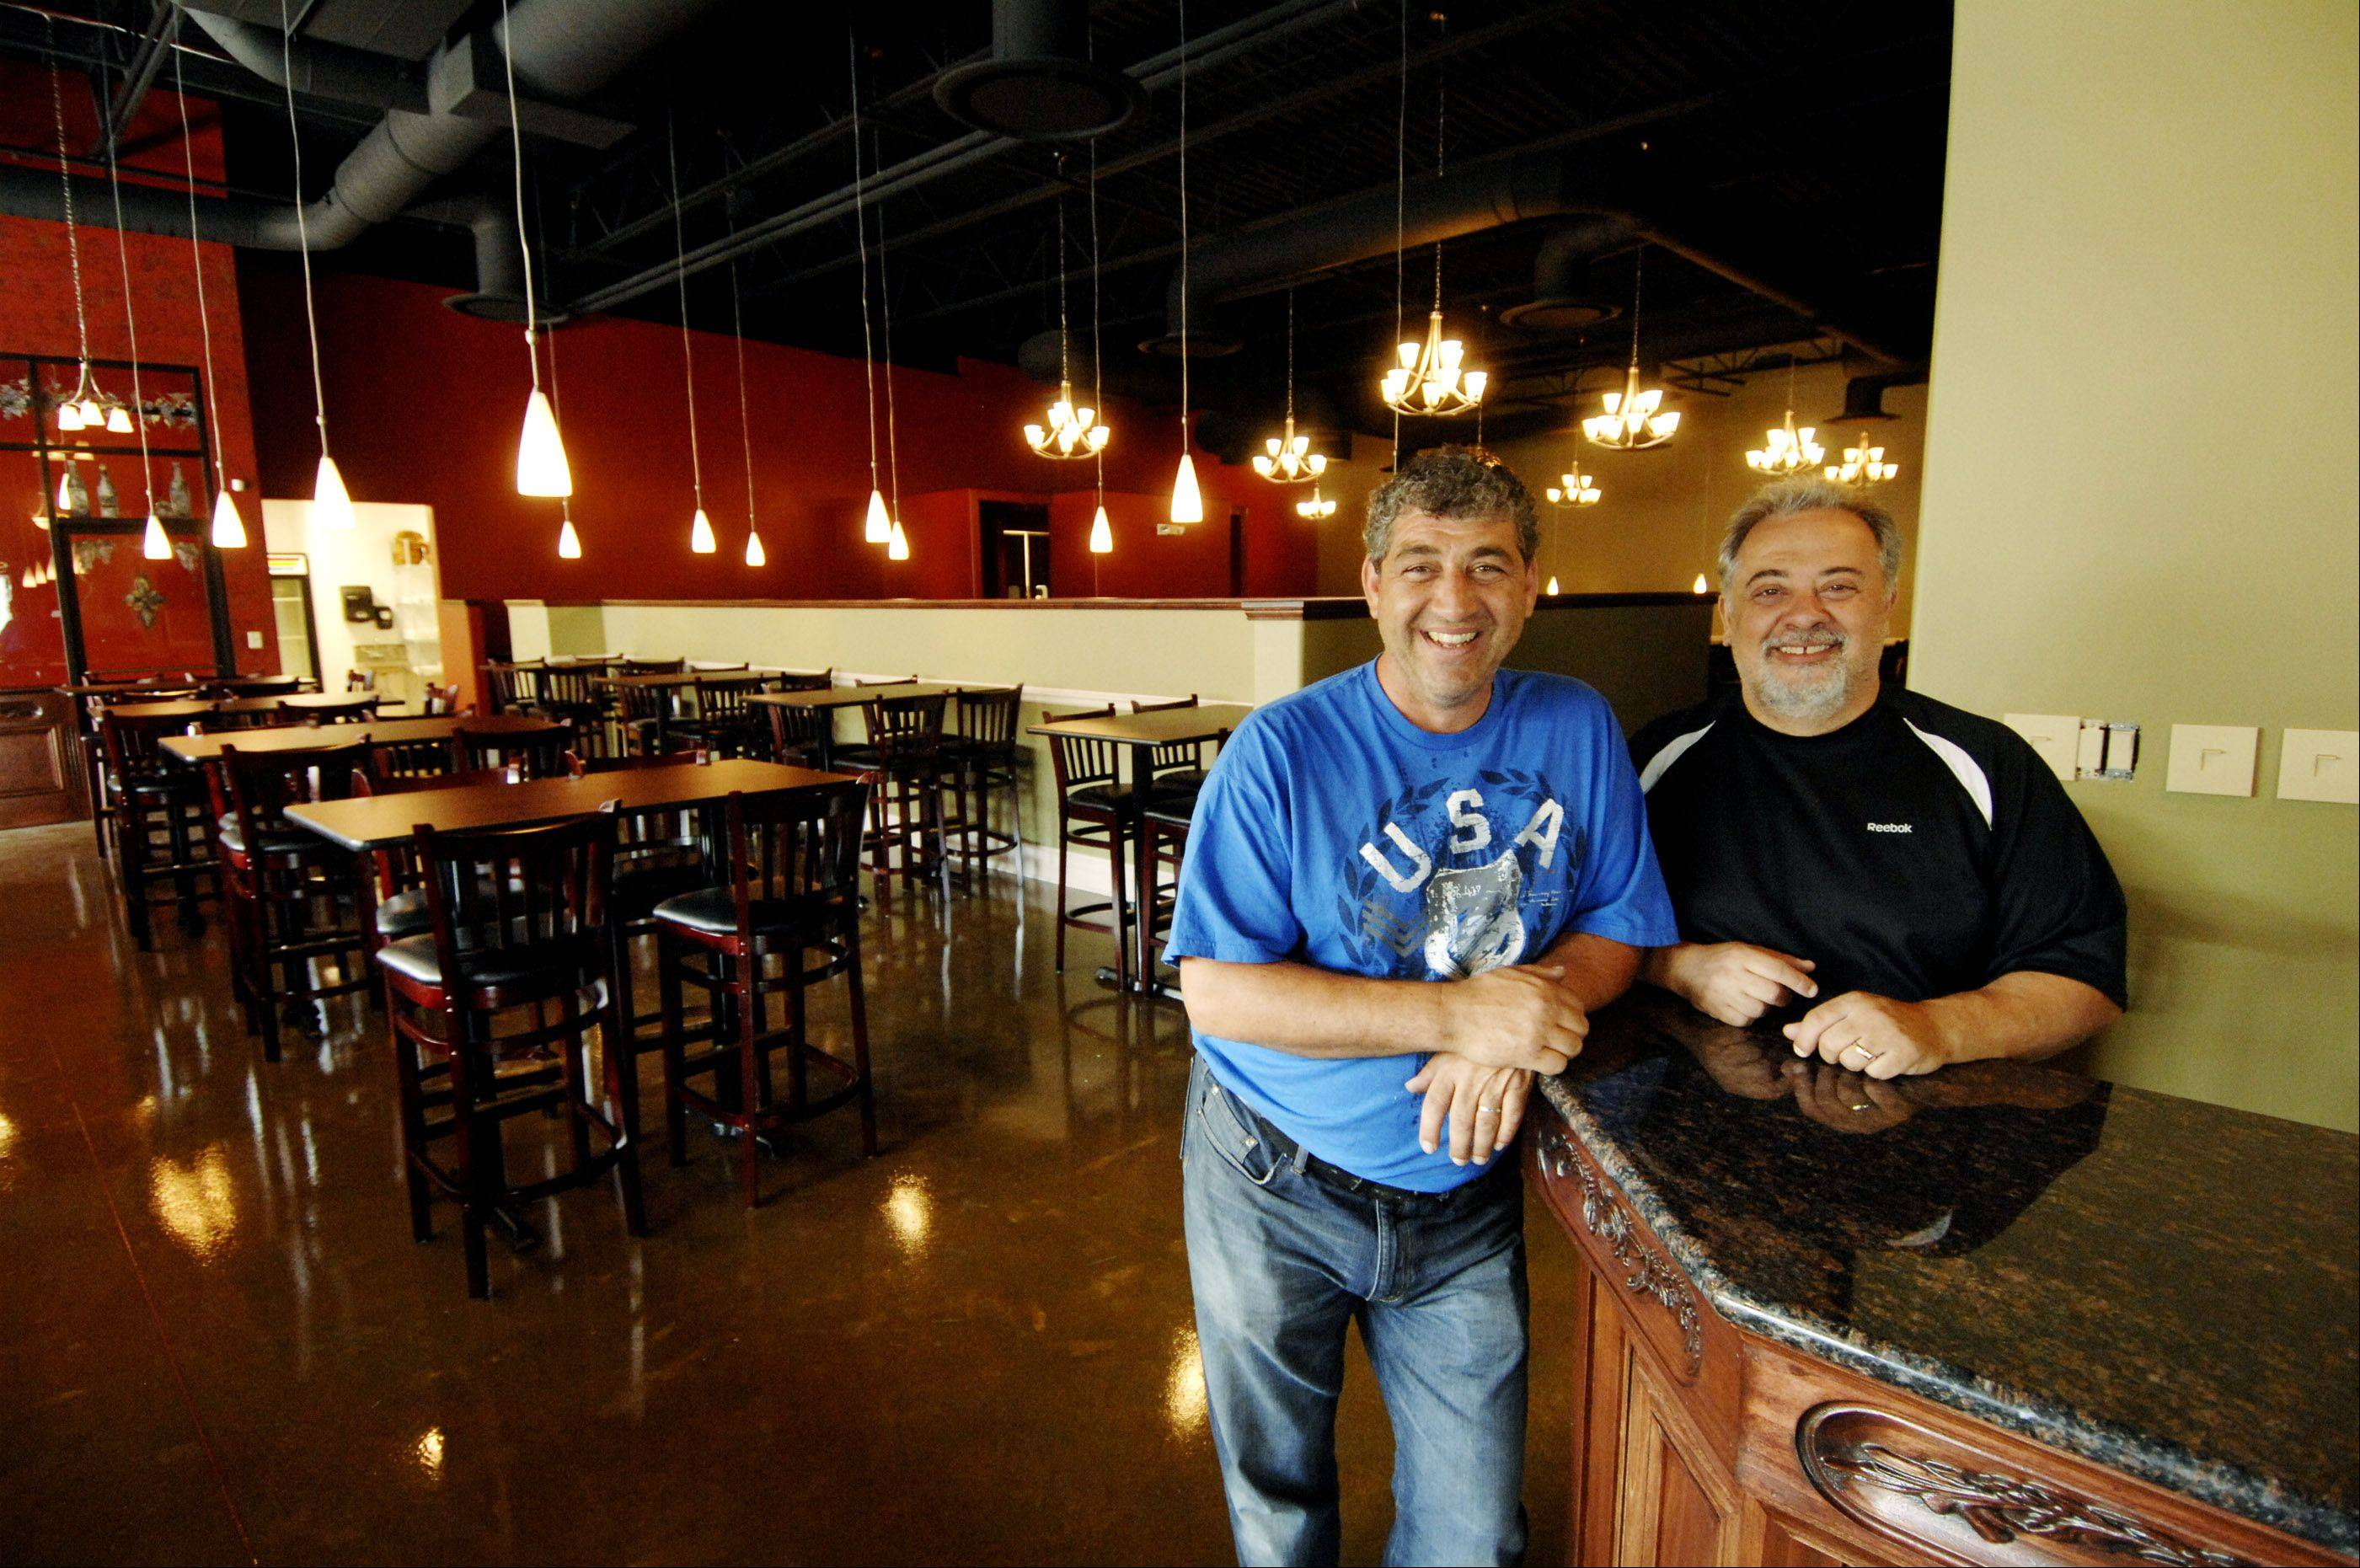 Owners of the new Salerno-Pincente restaurant, Andrew Salerno, left, and Frank Pincente, right, which will open Saturday in Villa Park on North Avenue.